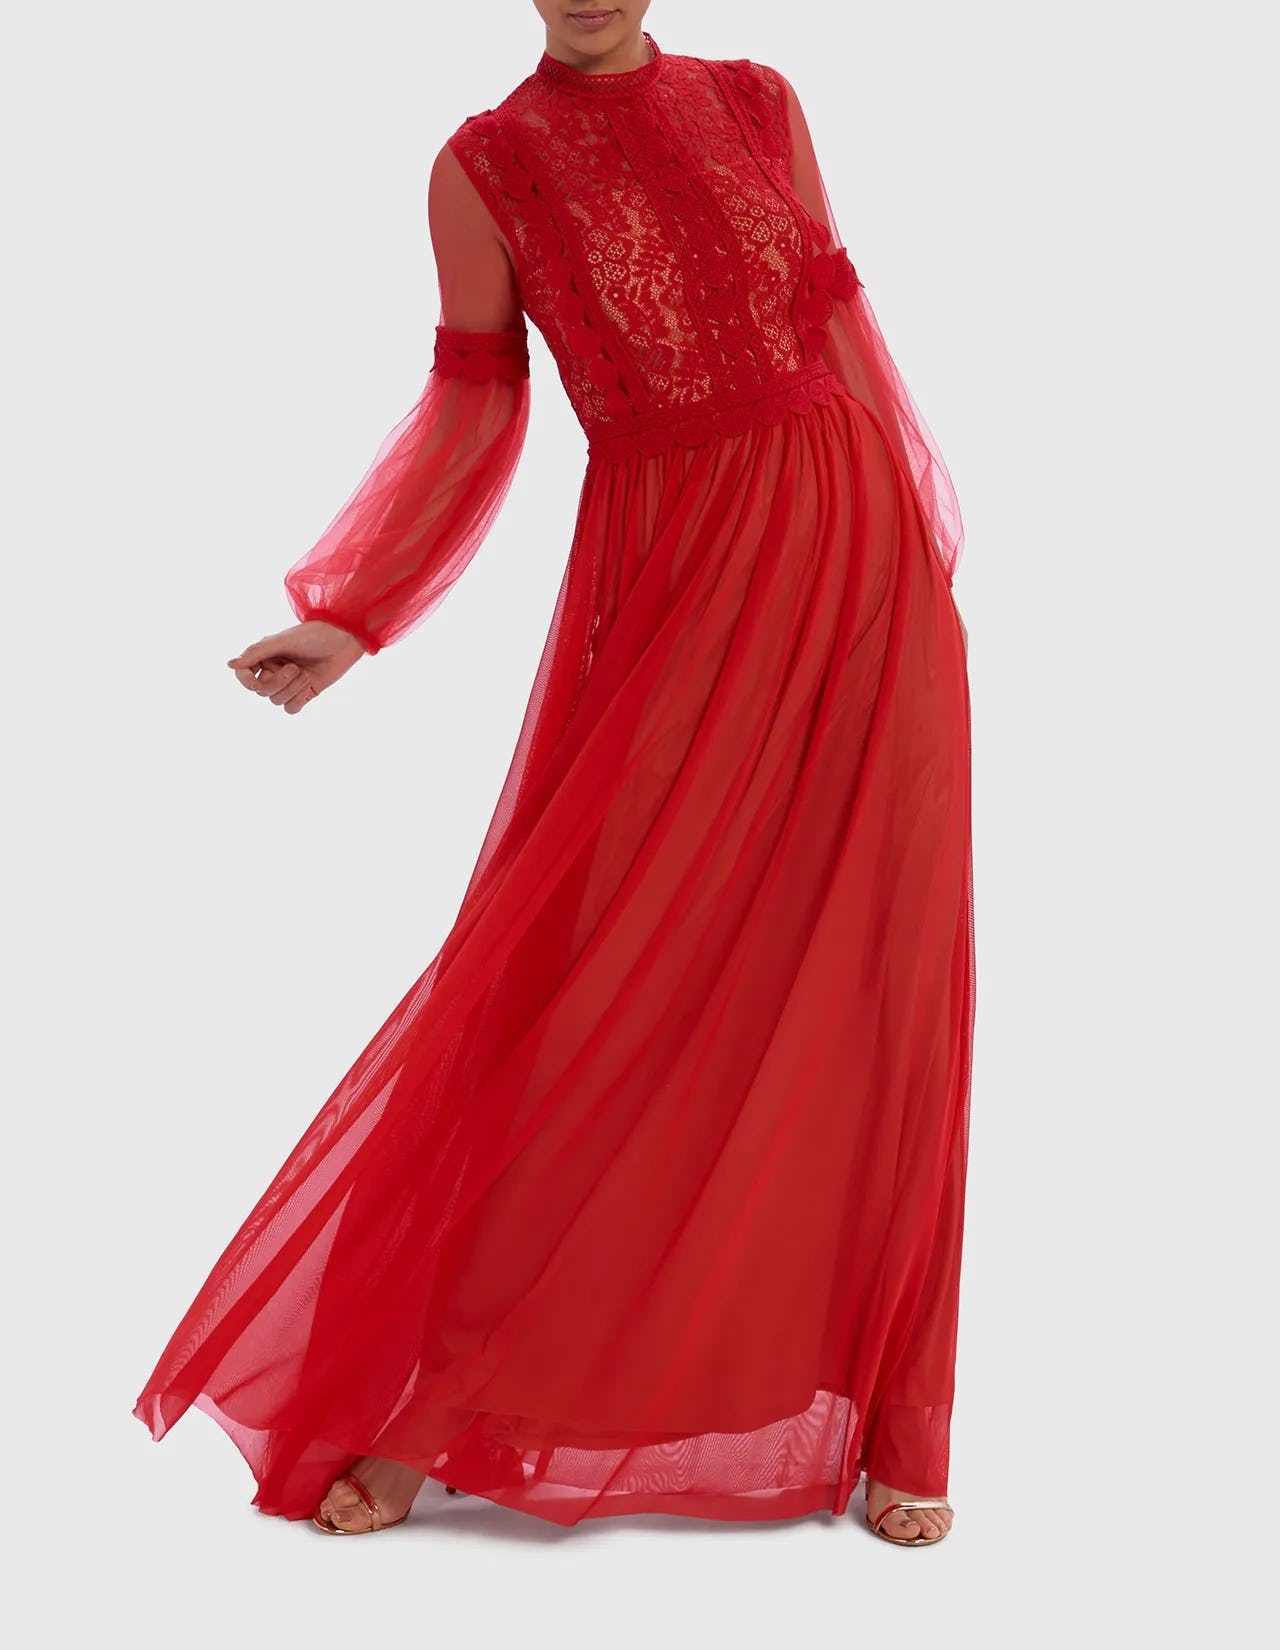 Red Lace Chiffon Long Sleeve Maxi Dress Forever Unique